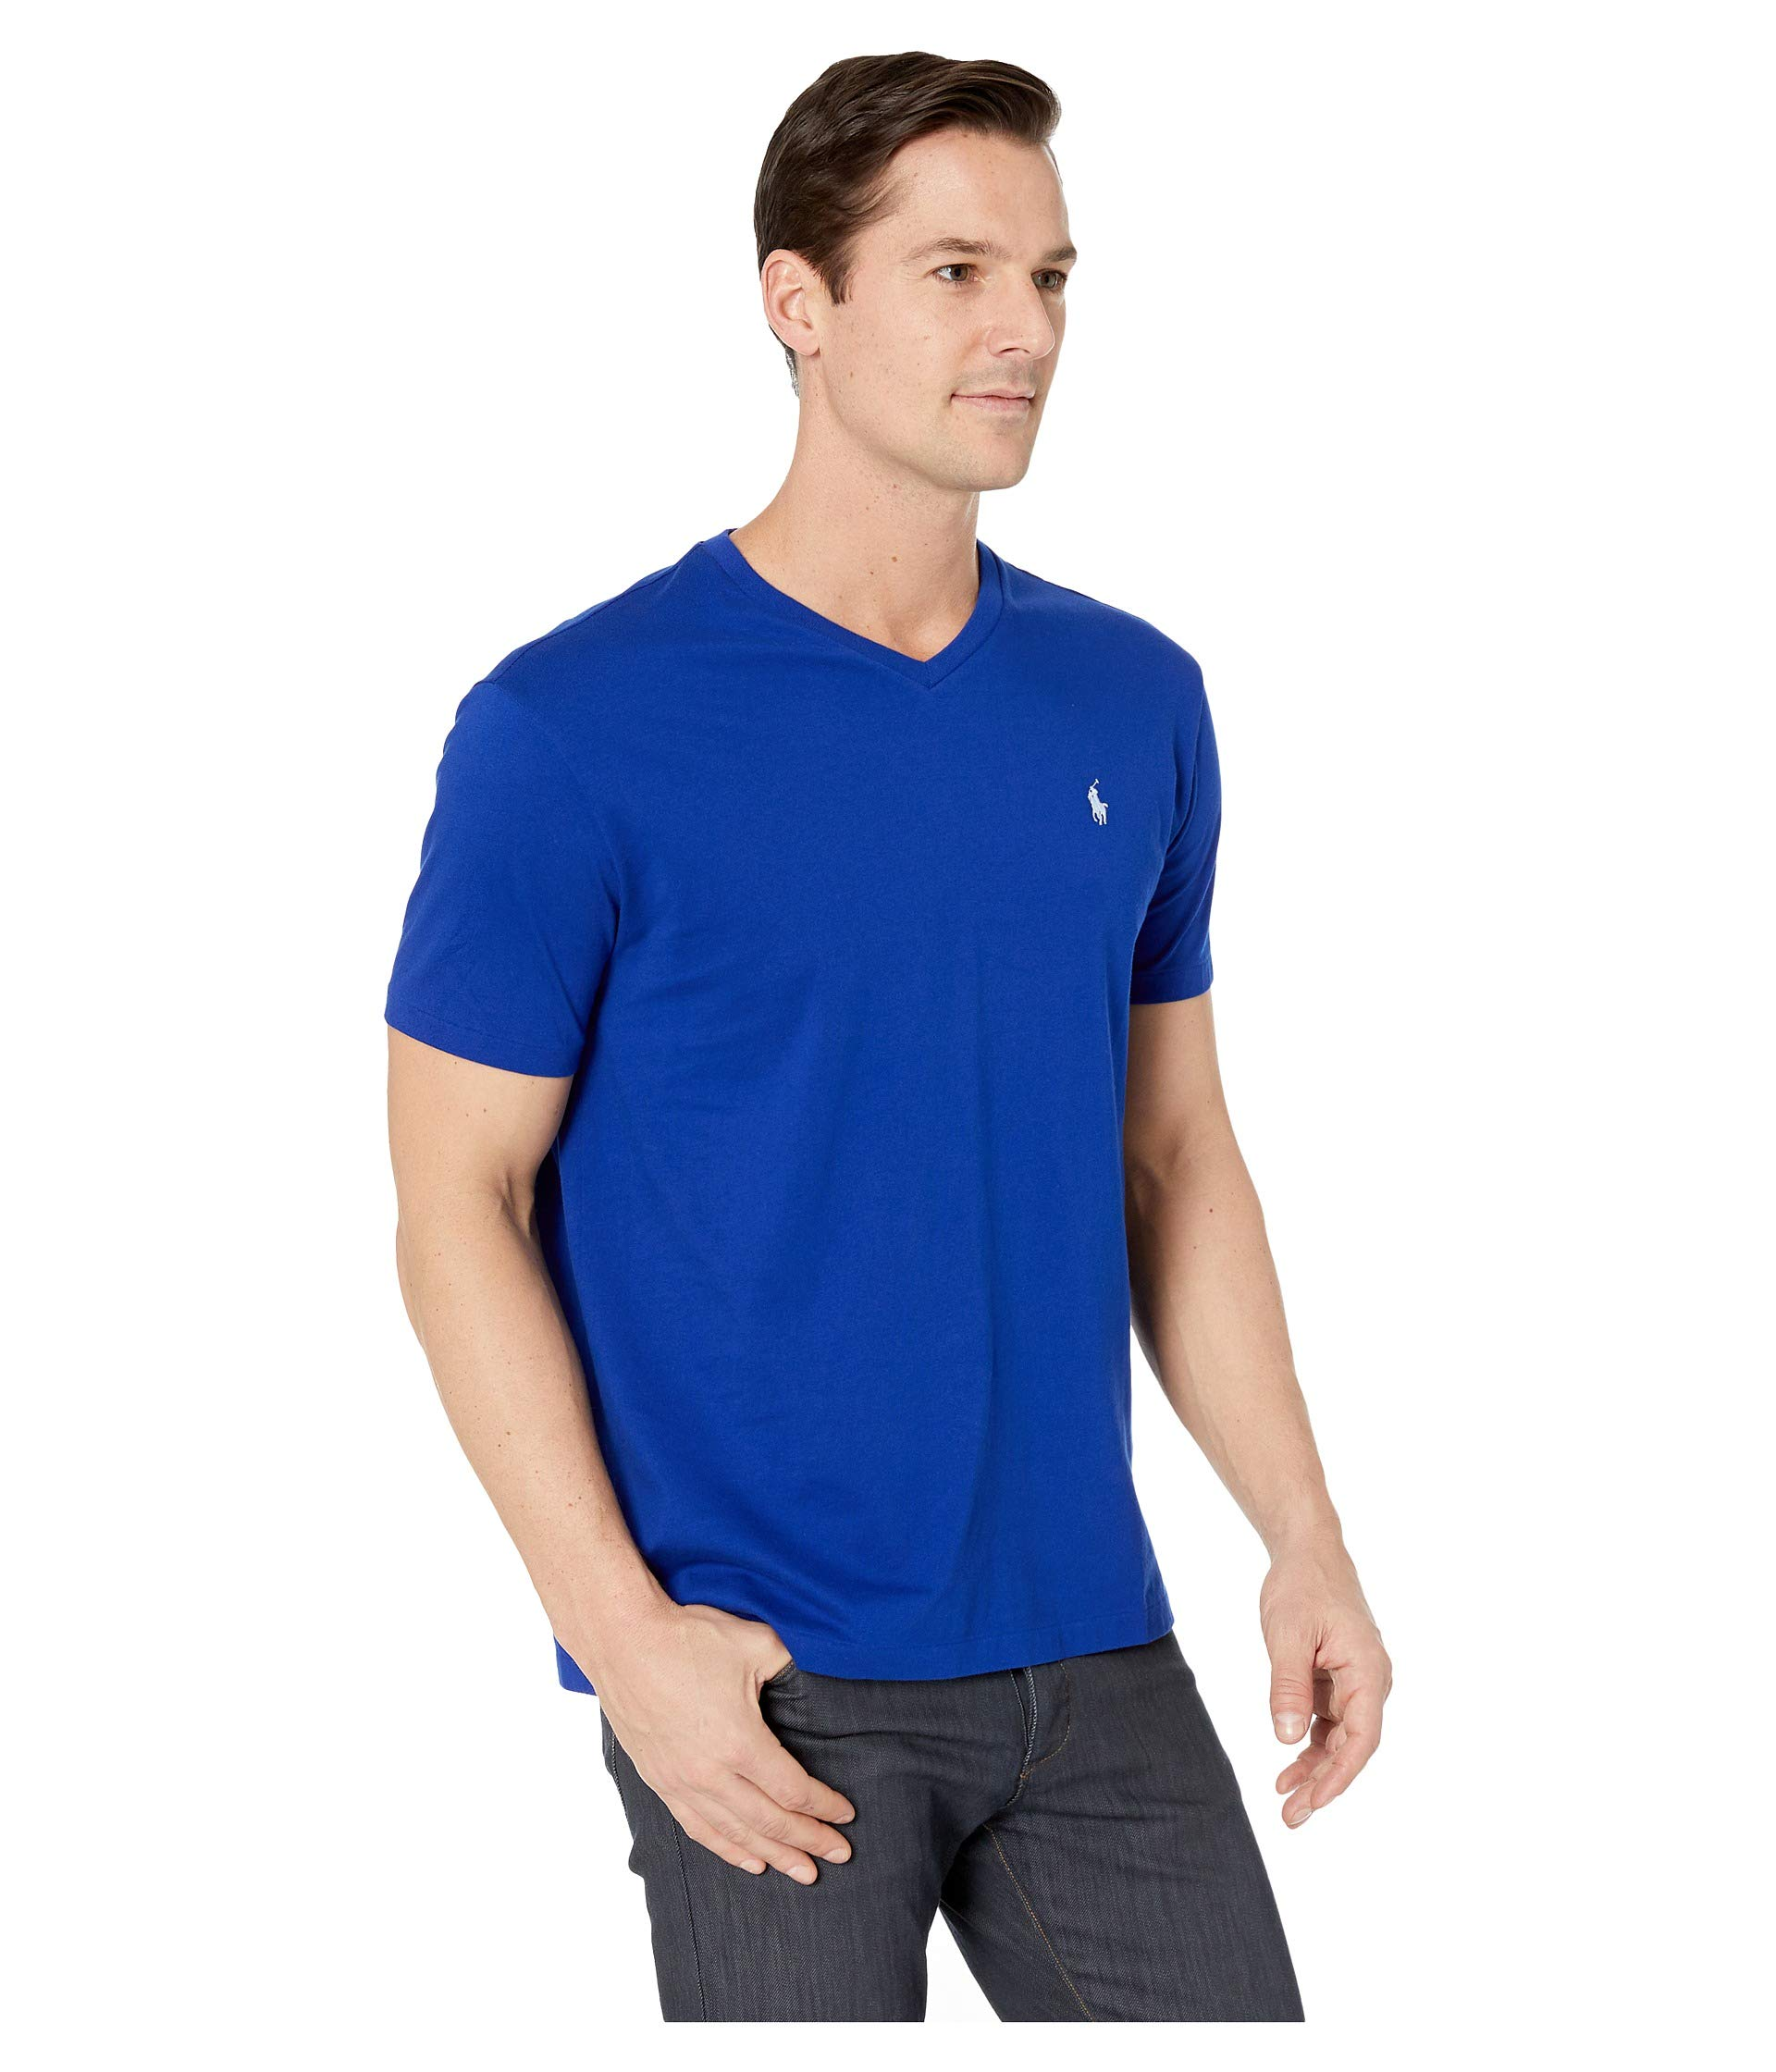 Ralph neck Classic Polo Heritage T Fit Jersey 1 Short Sleeve Lauren 26 Royal shirt V AzwYwOWdaq